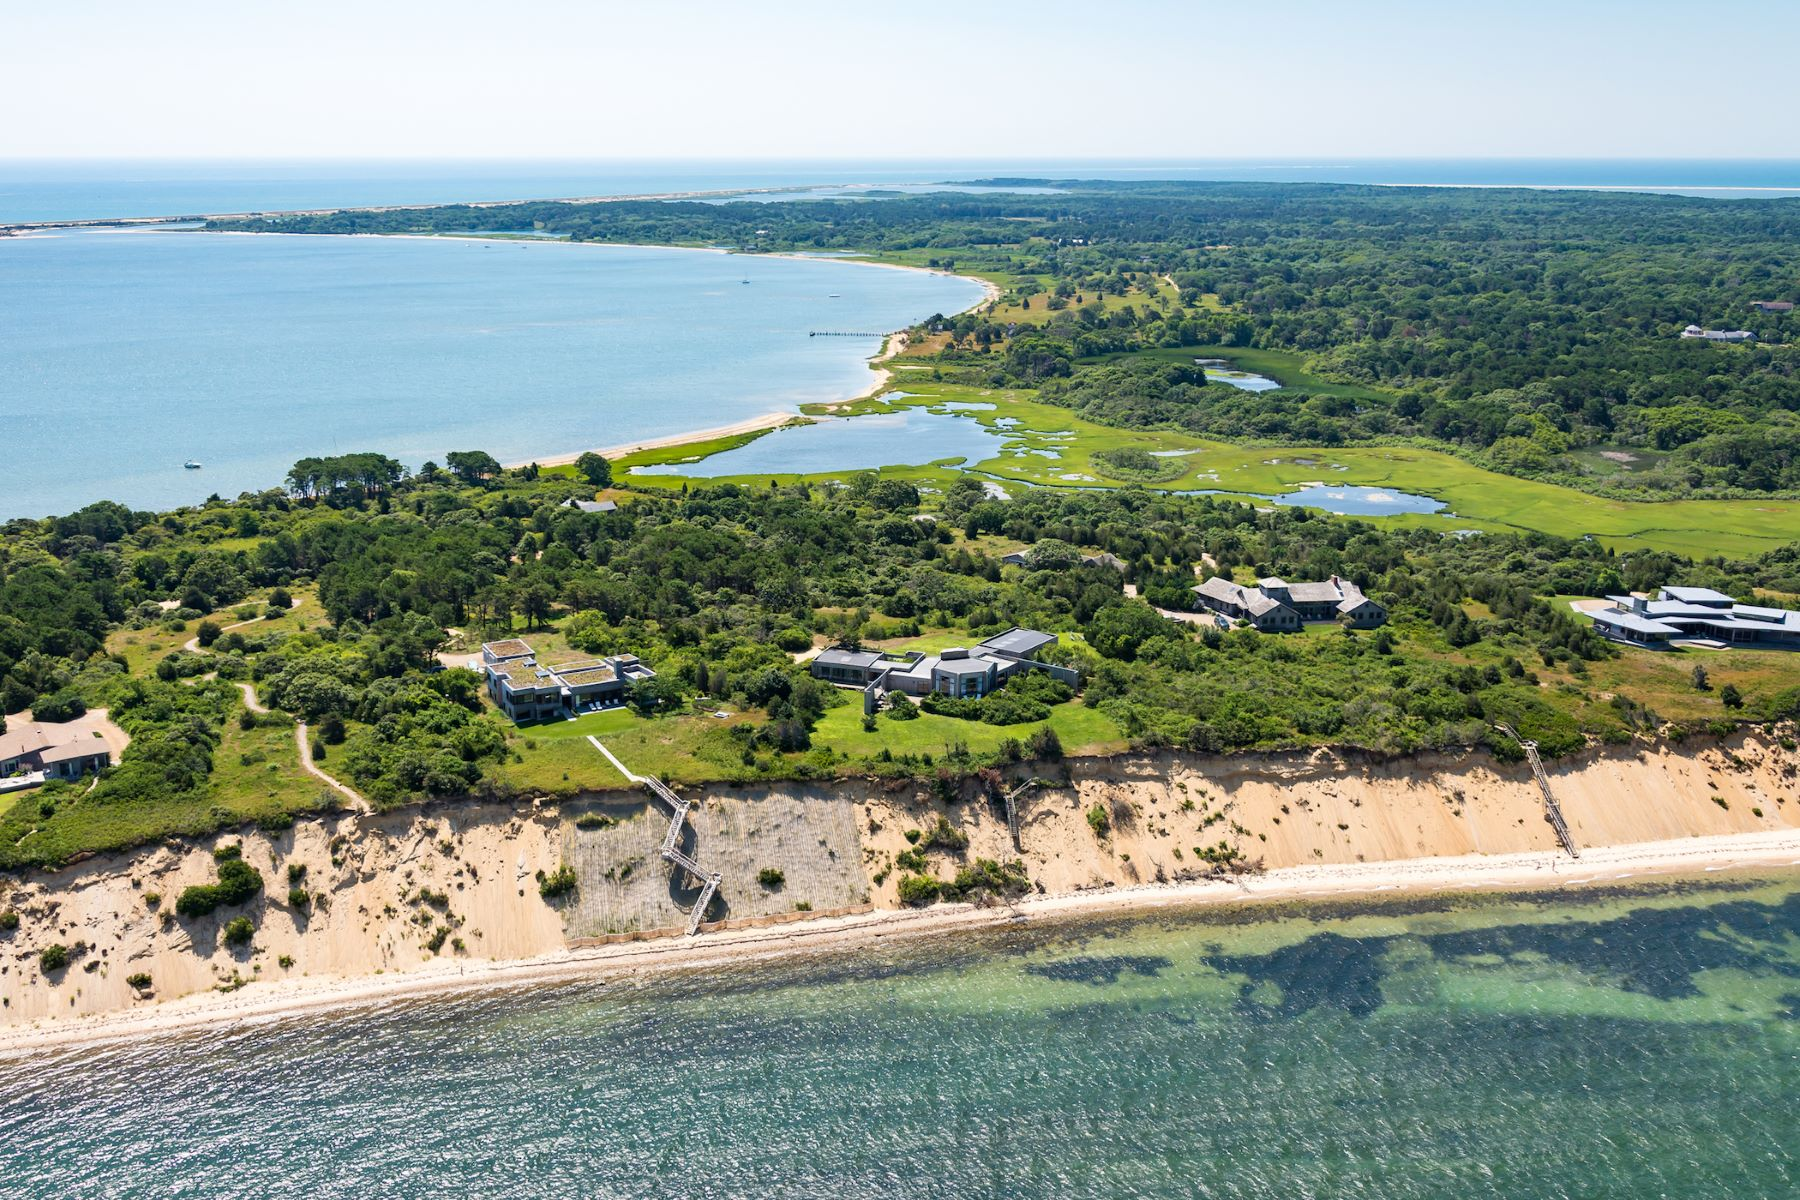 Villa per Vendita alle ore Waterfront perfection on Martha's Vineyard 23 North Neck Road Edgartown, Massachusetts 02539 Stati Uniti